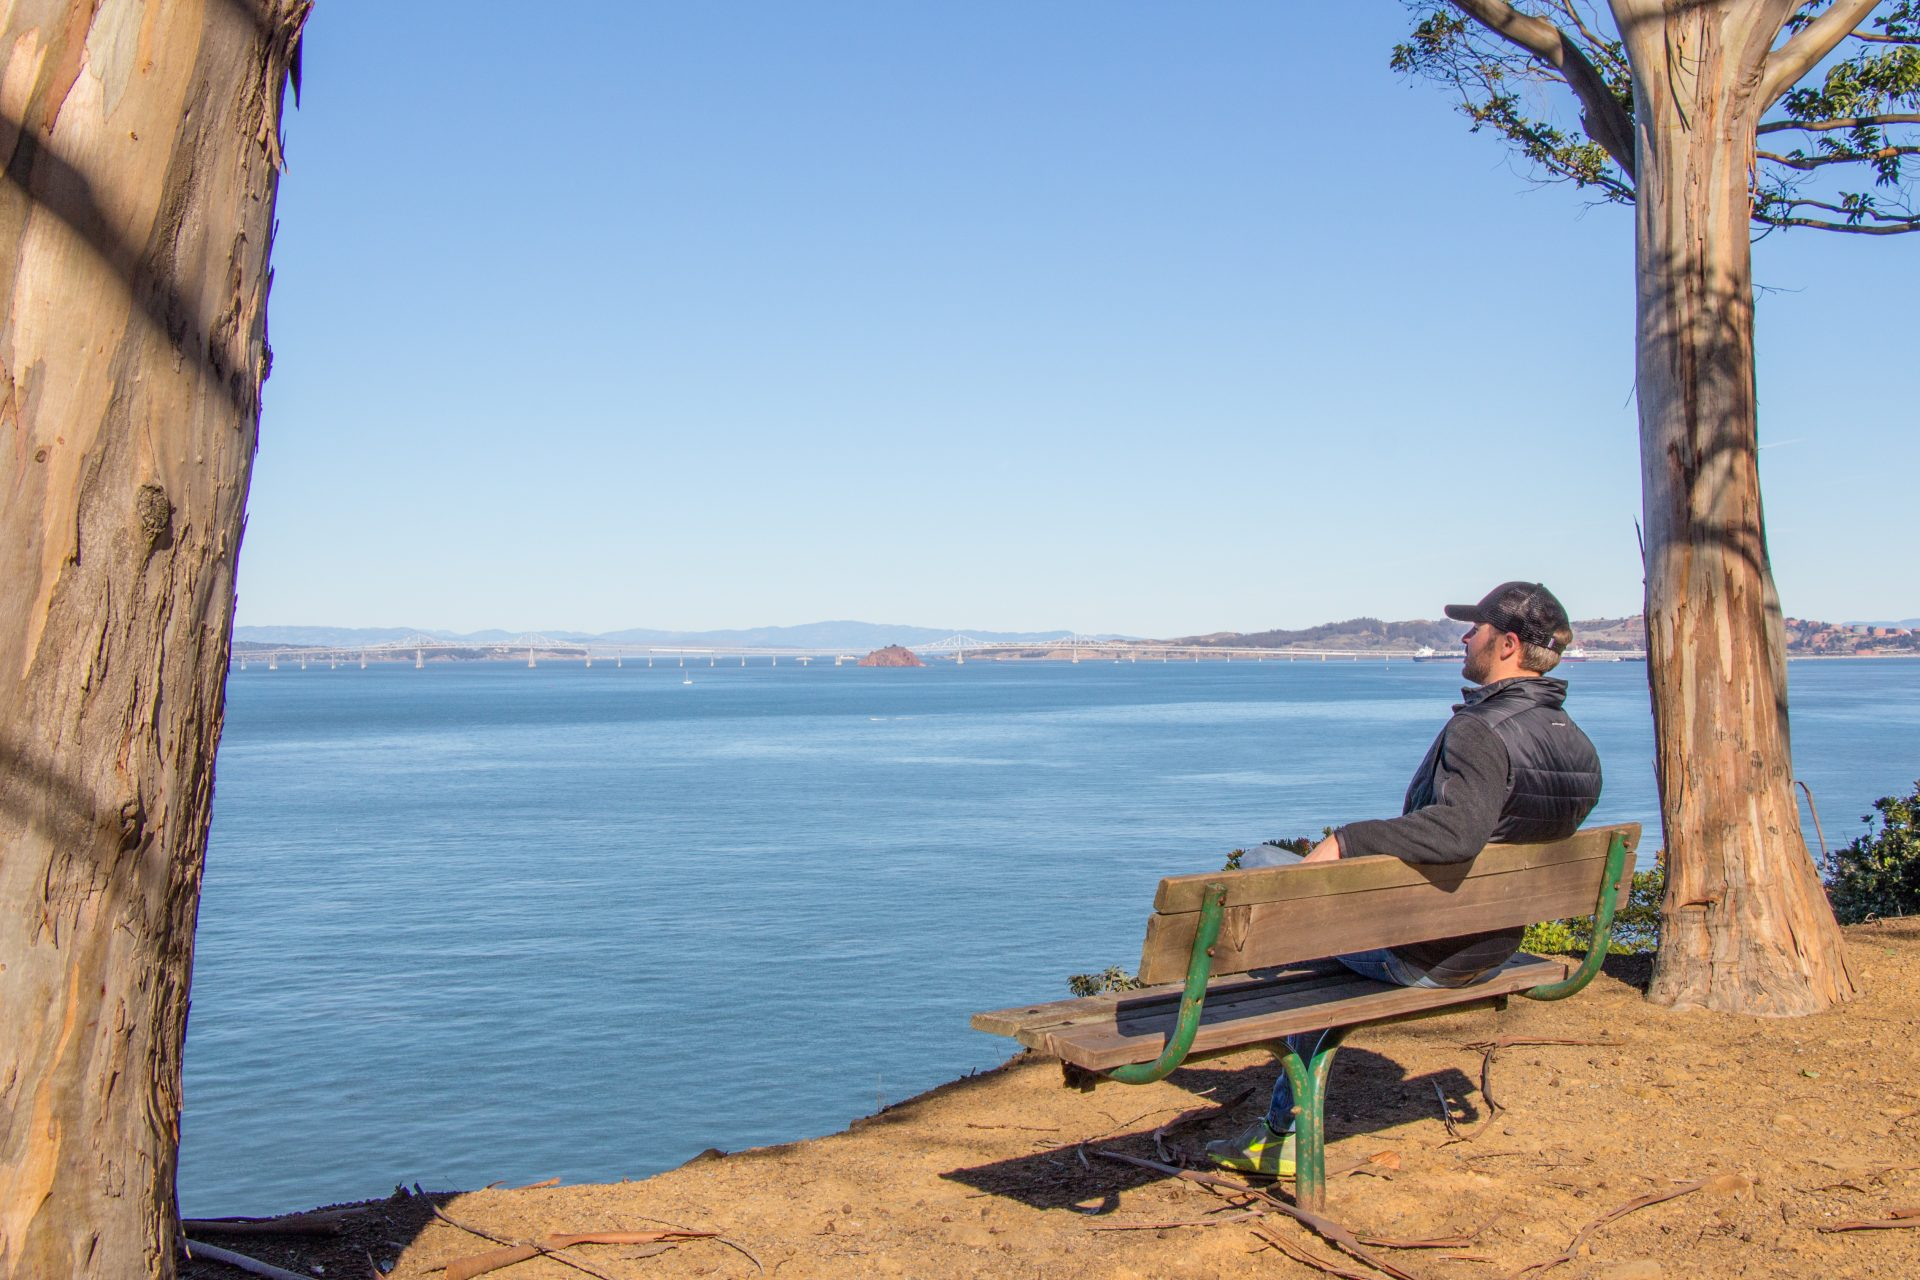 Bearded man in baseball hat sitting on bench overlooking SF Bay